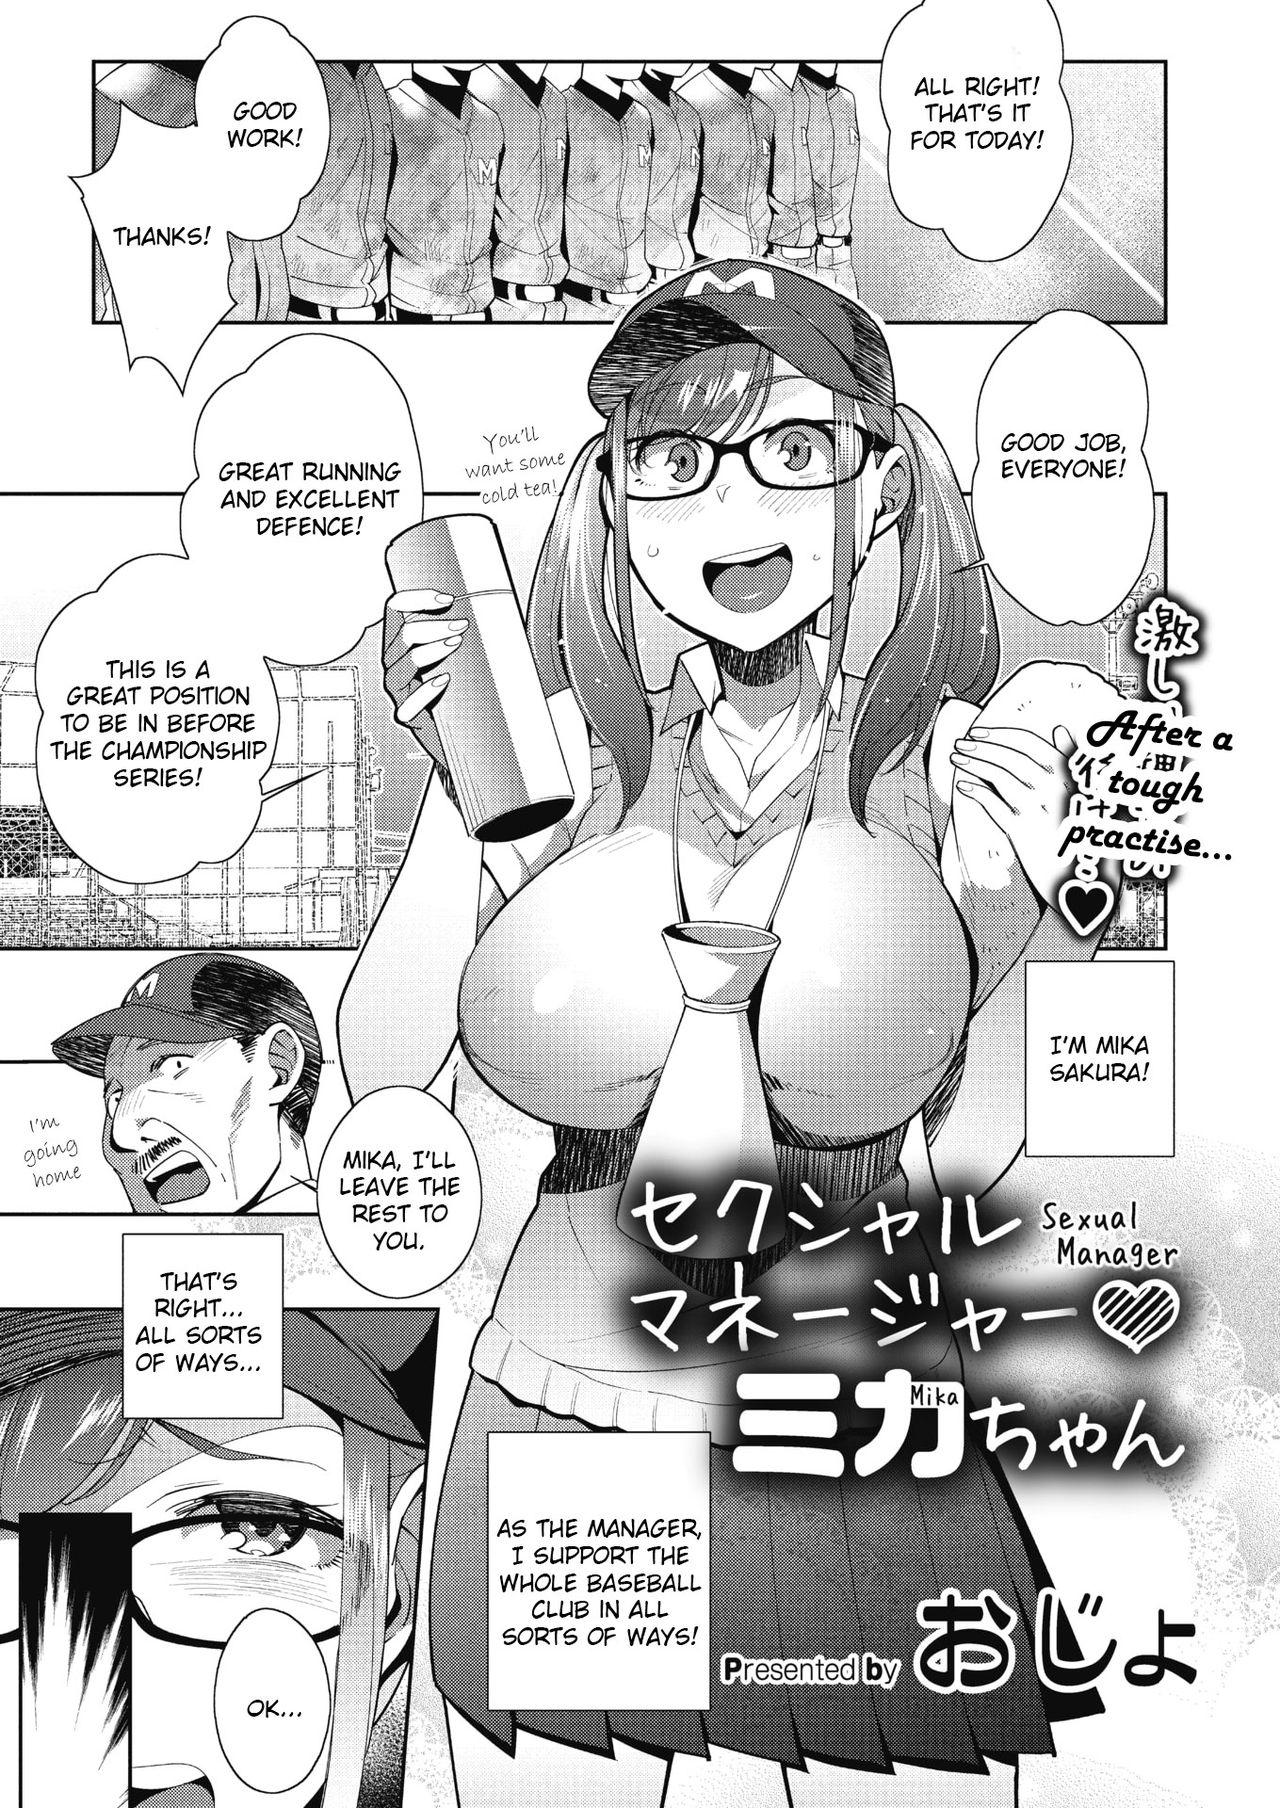 Sexual Manager Mika-chan 0